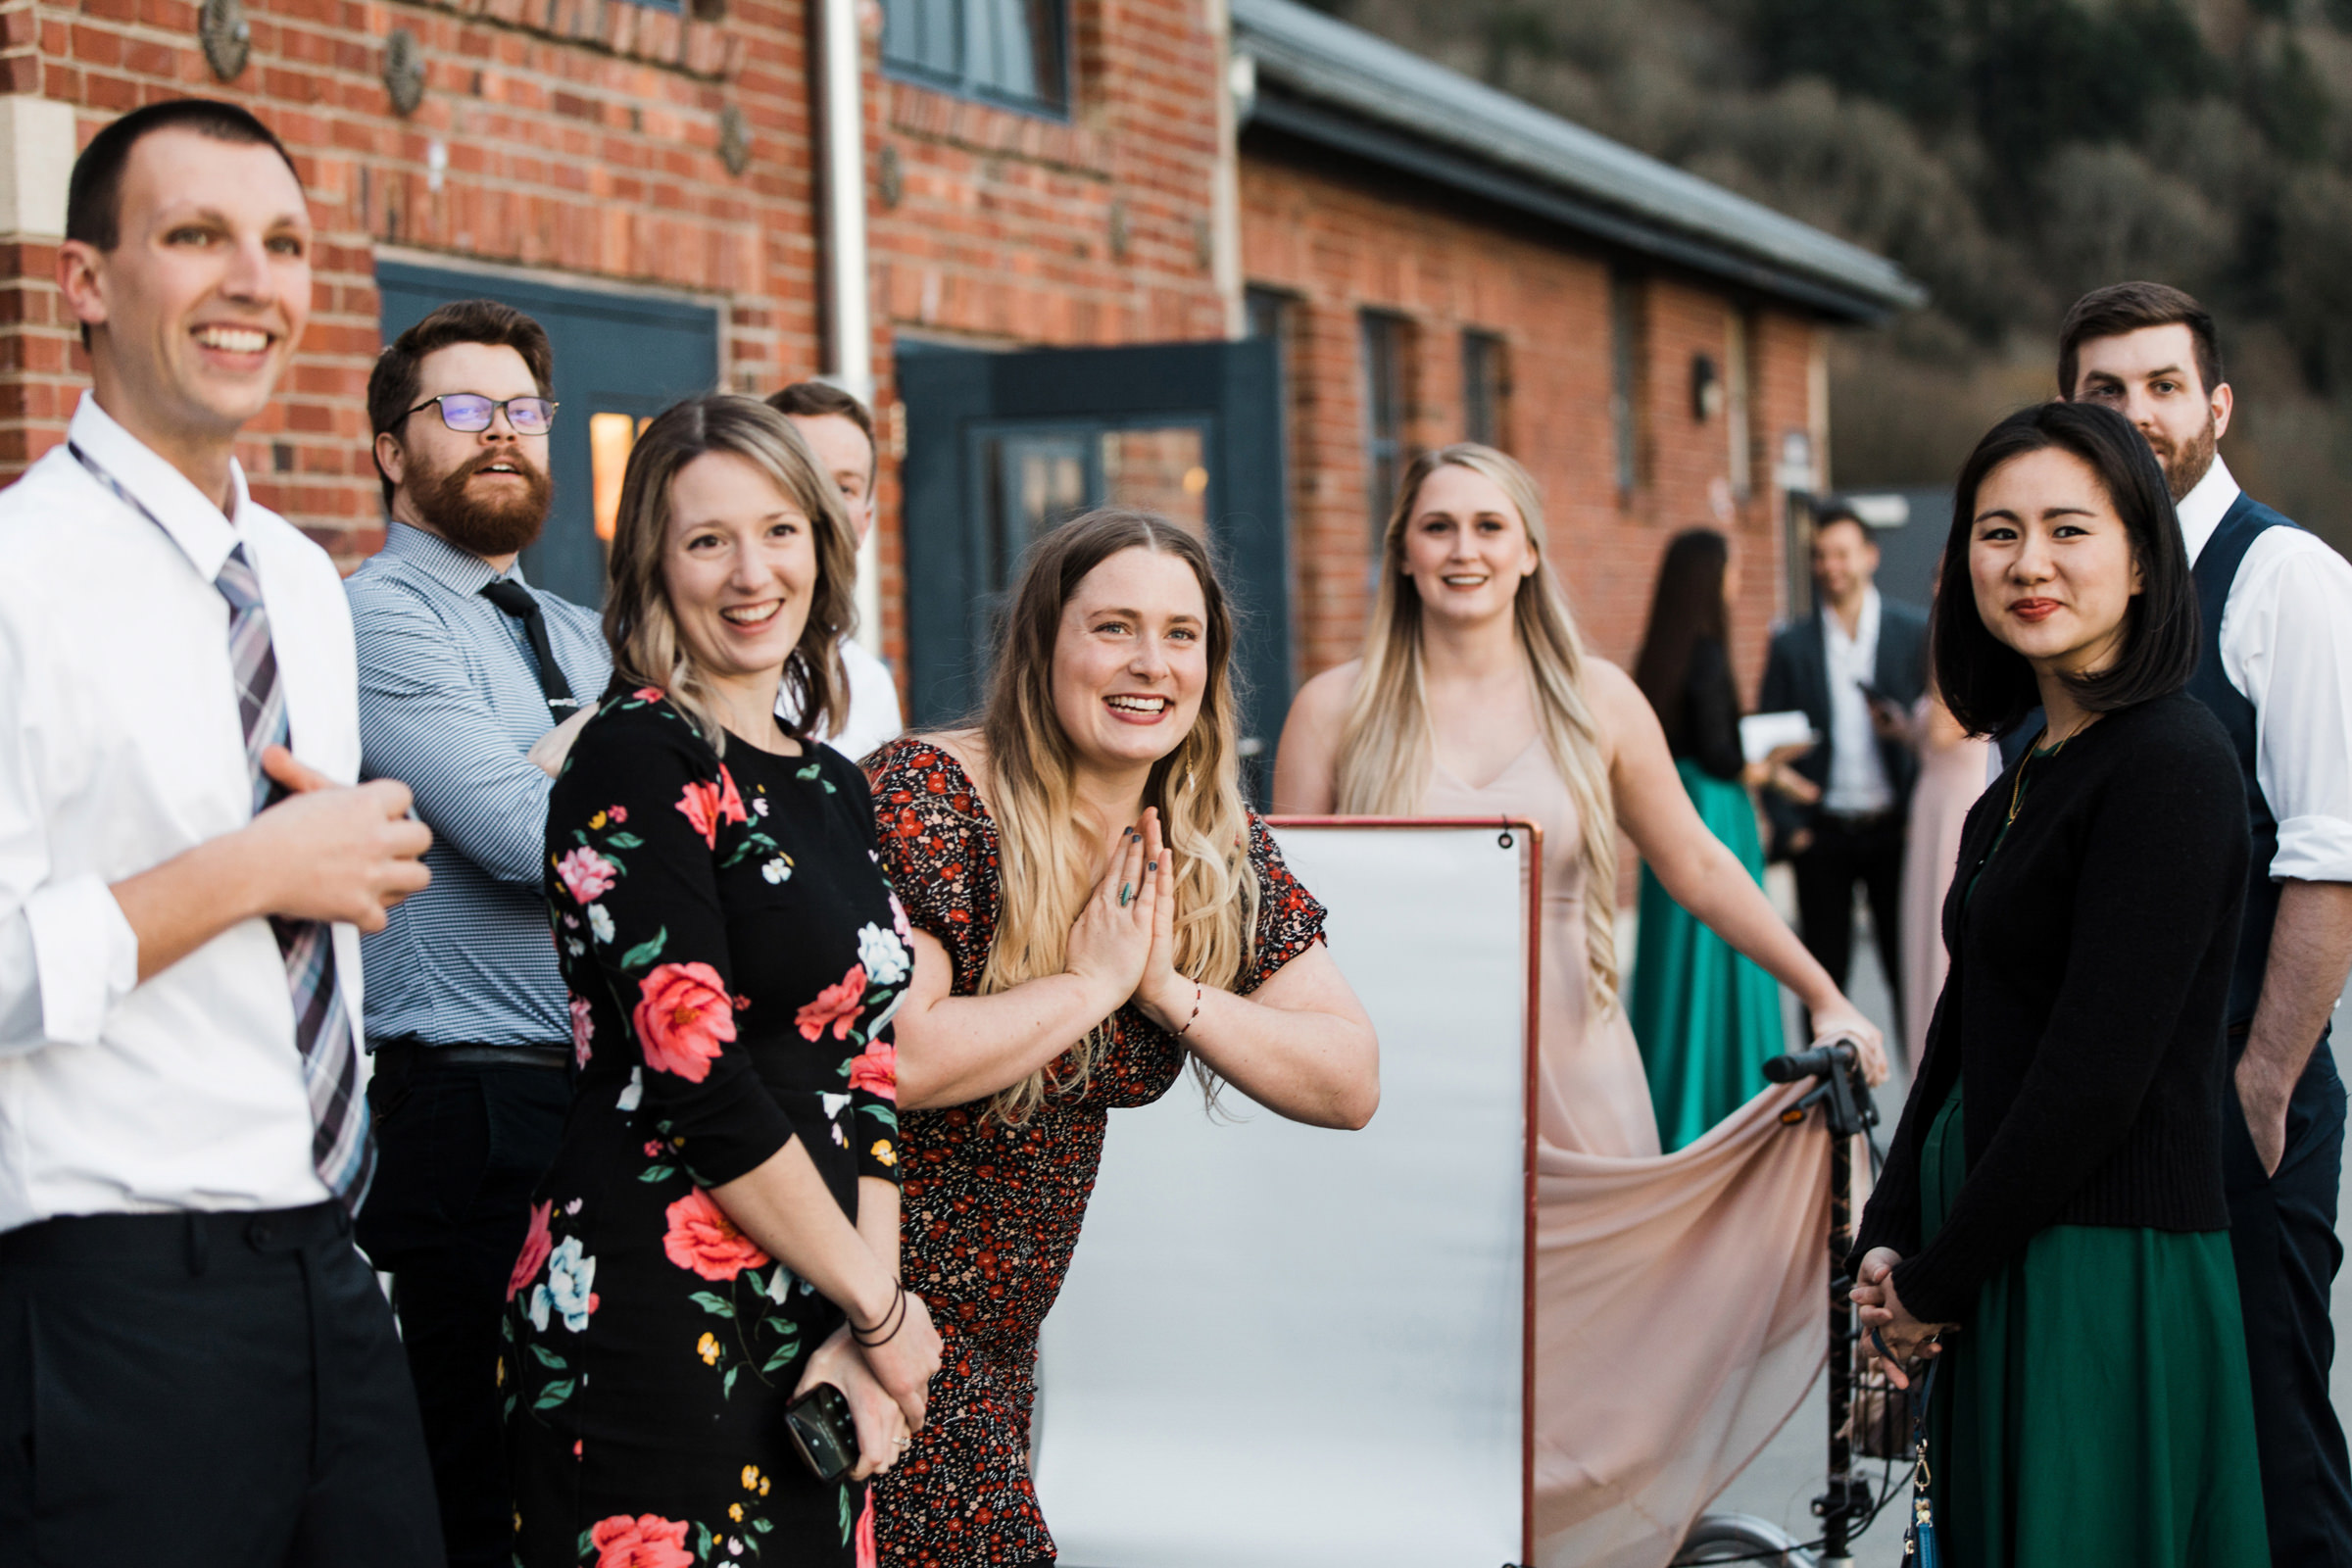 Guests wait for the couple to arrive - photo by Stephanie Cristalli Photography